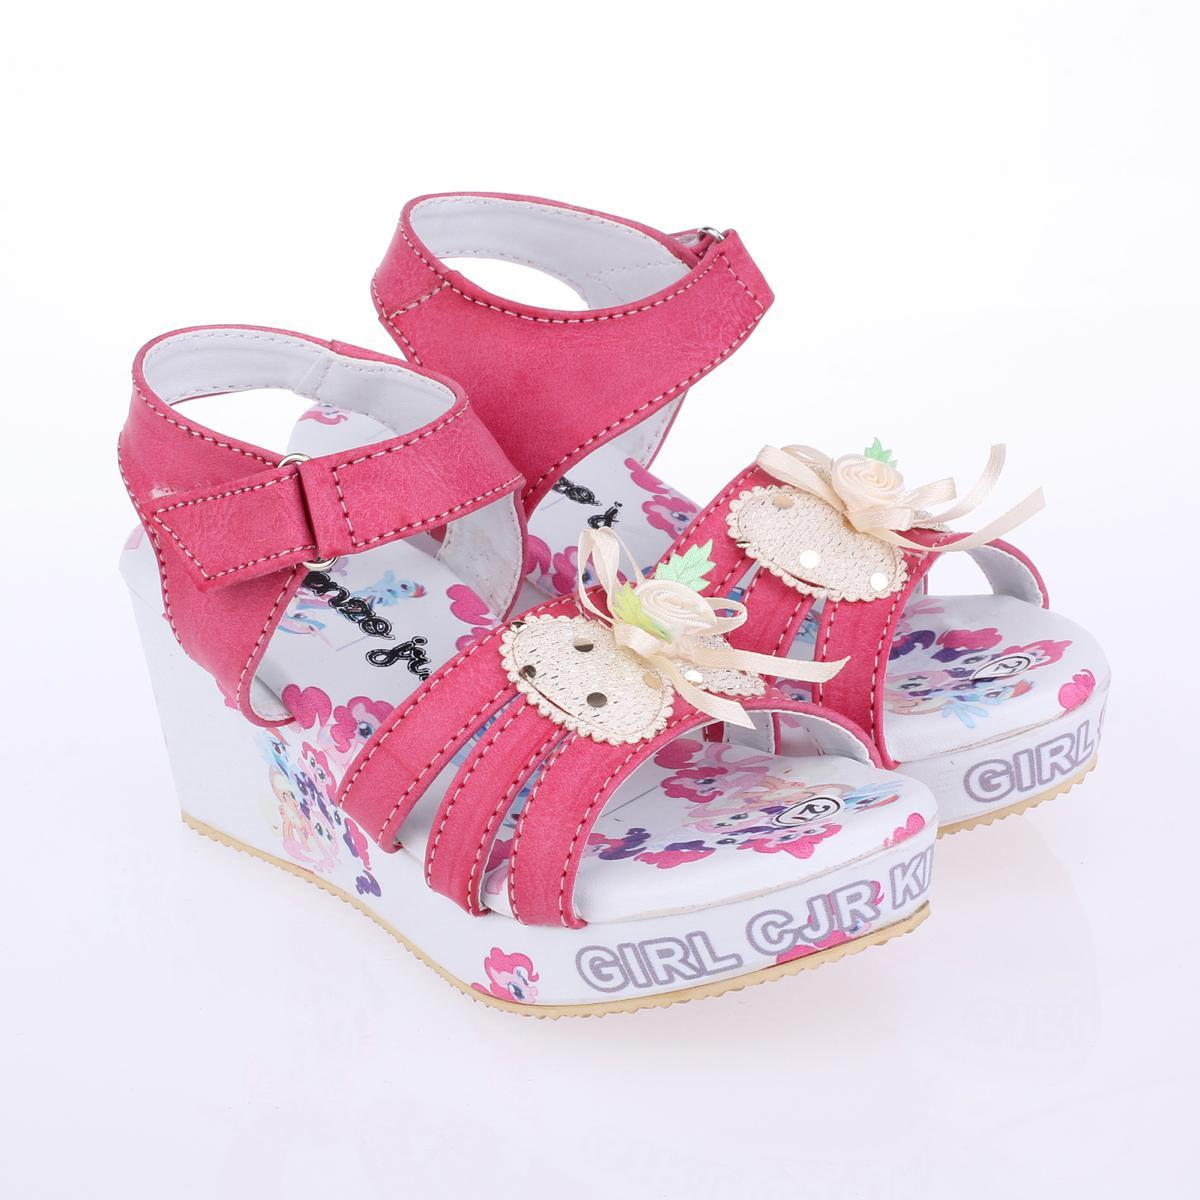 Sandal Wedges My Little Pony Anak Perempuan Catenzo jr CAB056